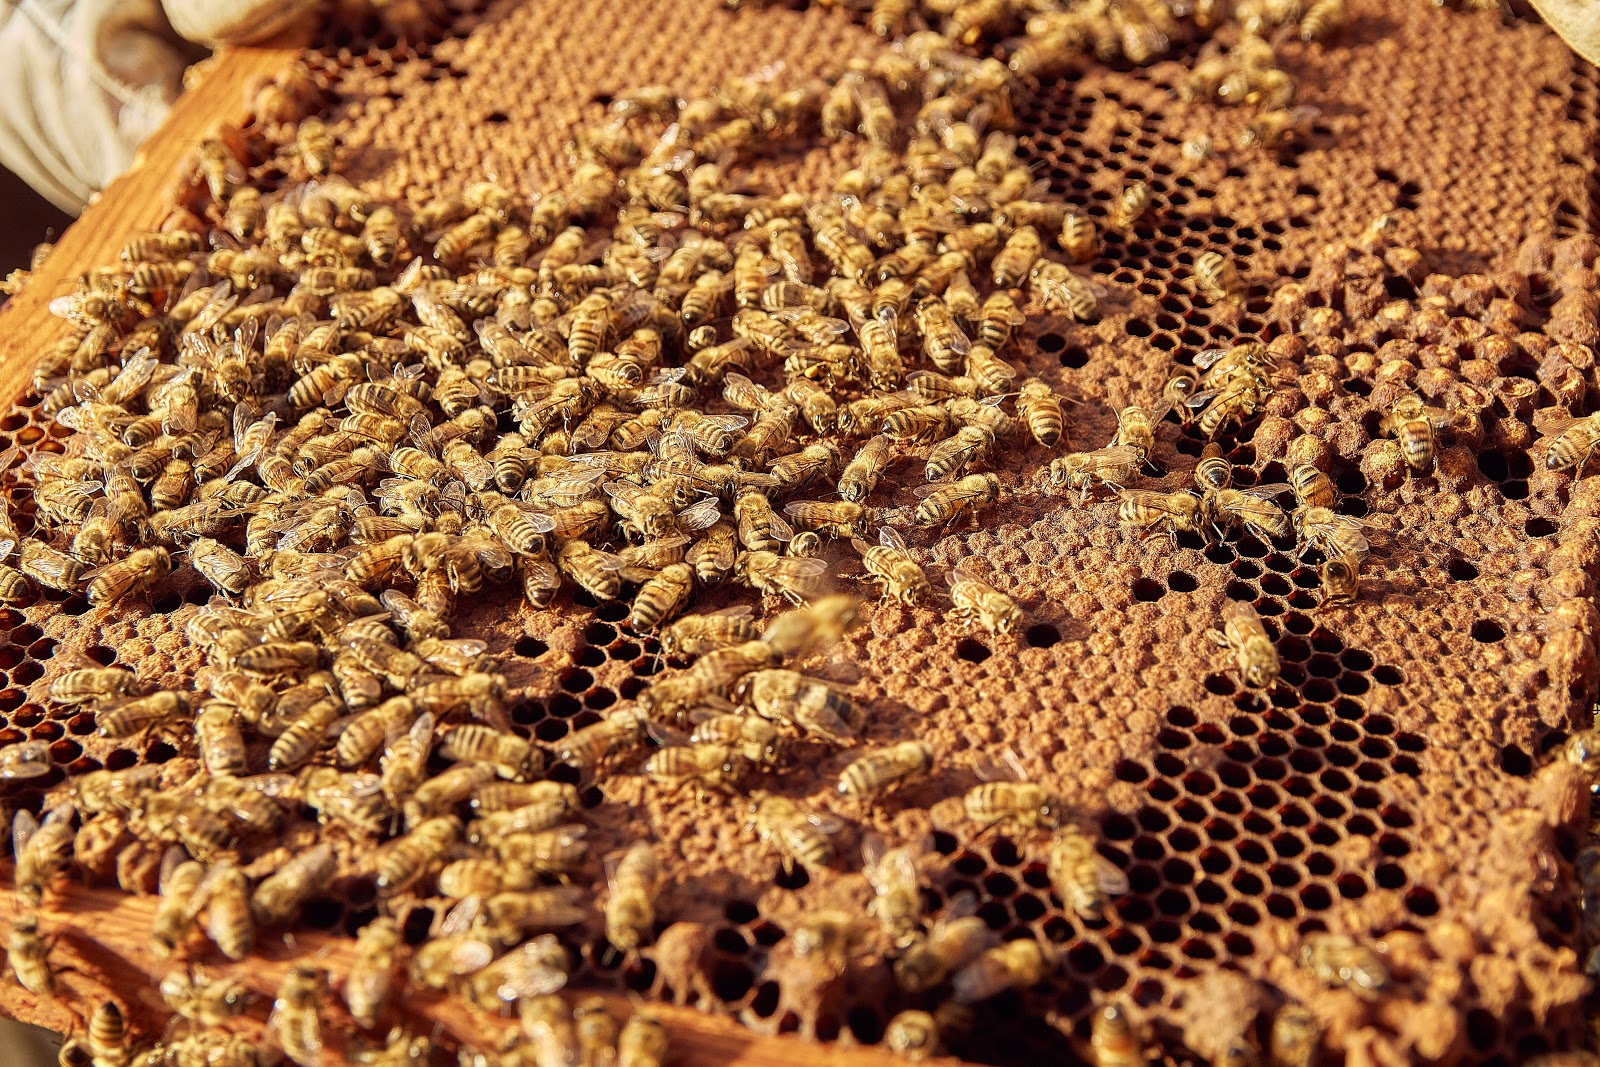 bees on a tray